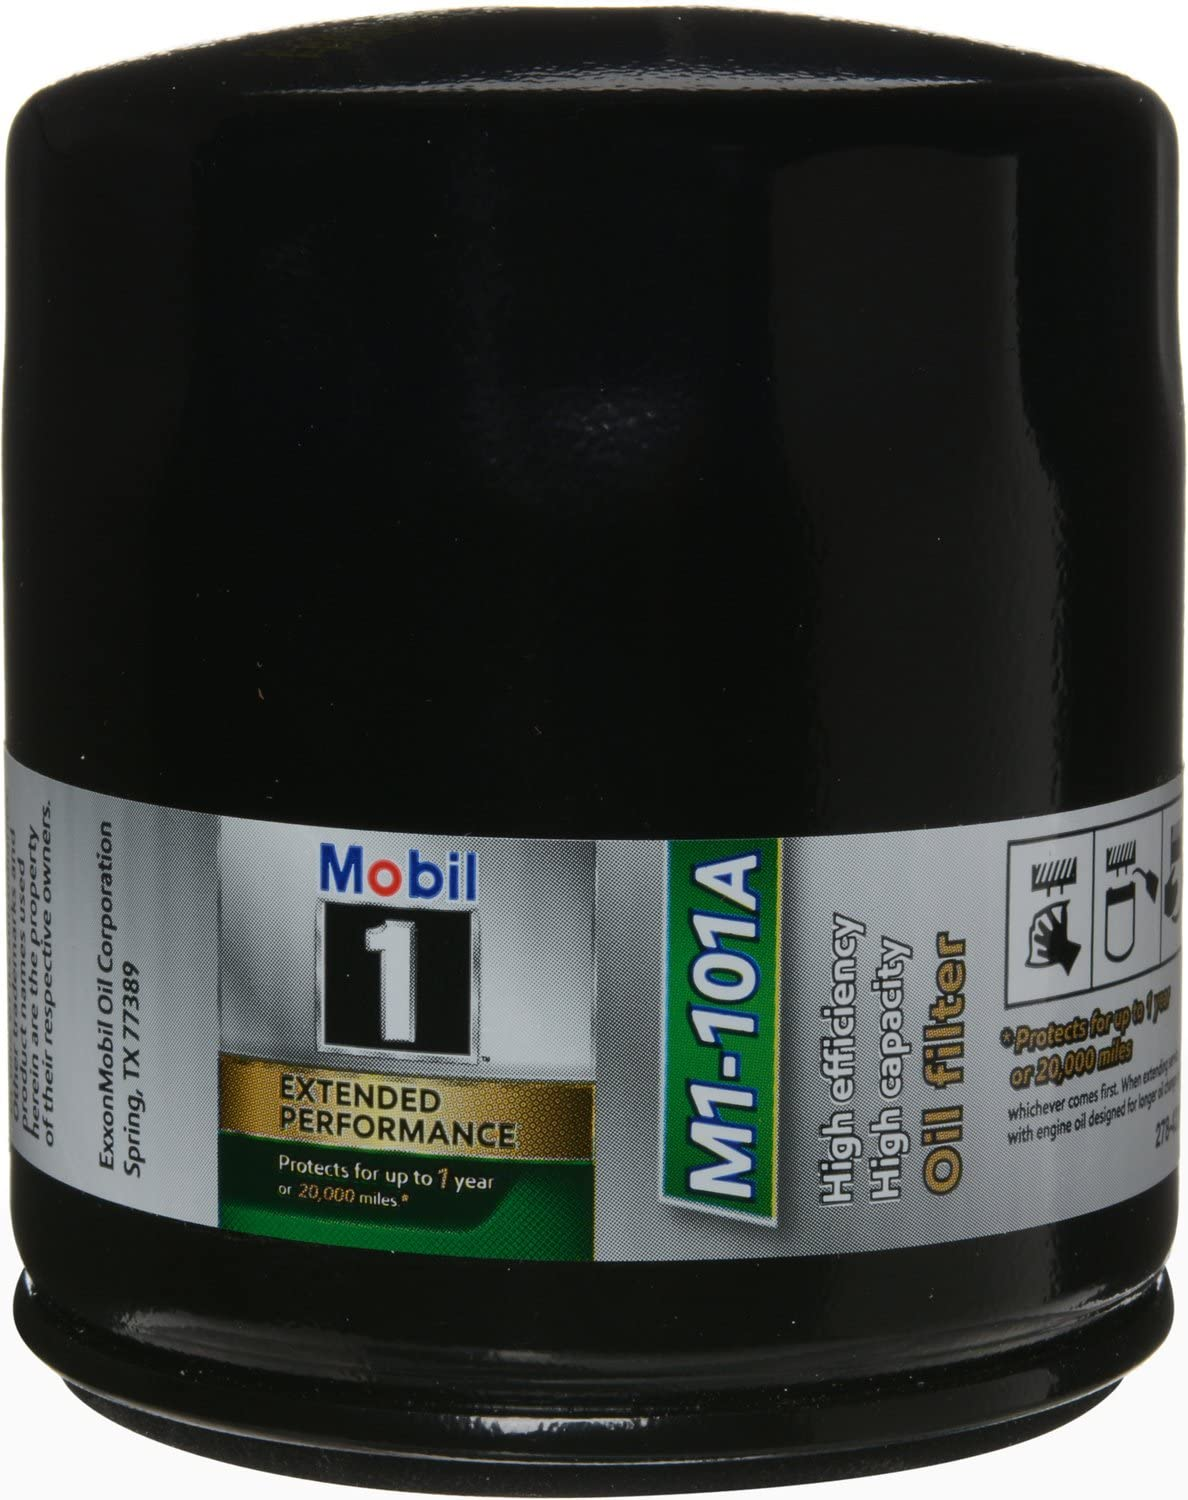 Mobil 1 M1-101A Extended Performance Oil Filter, 1 Pack